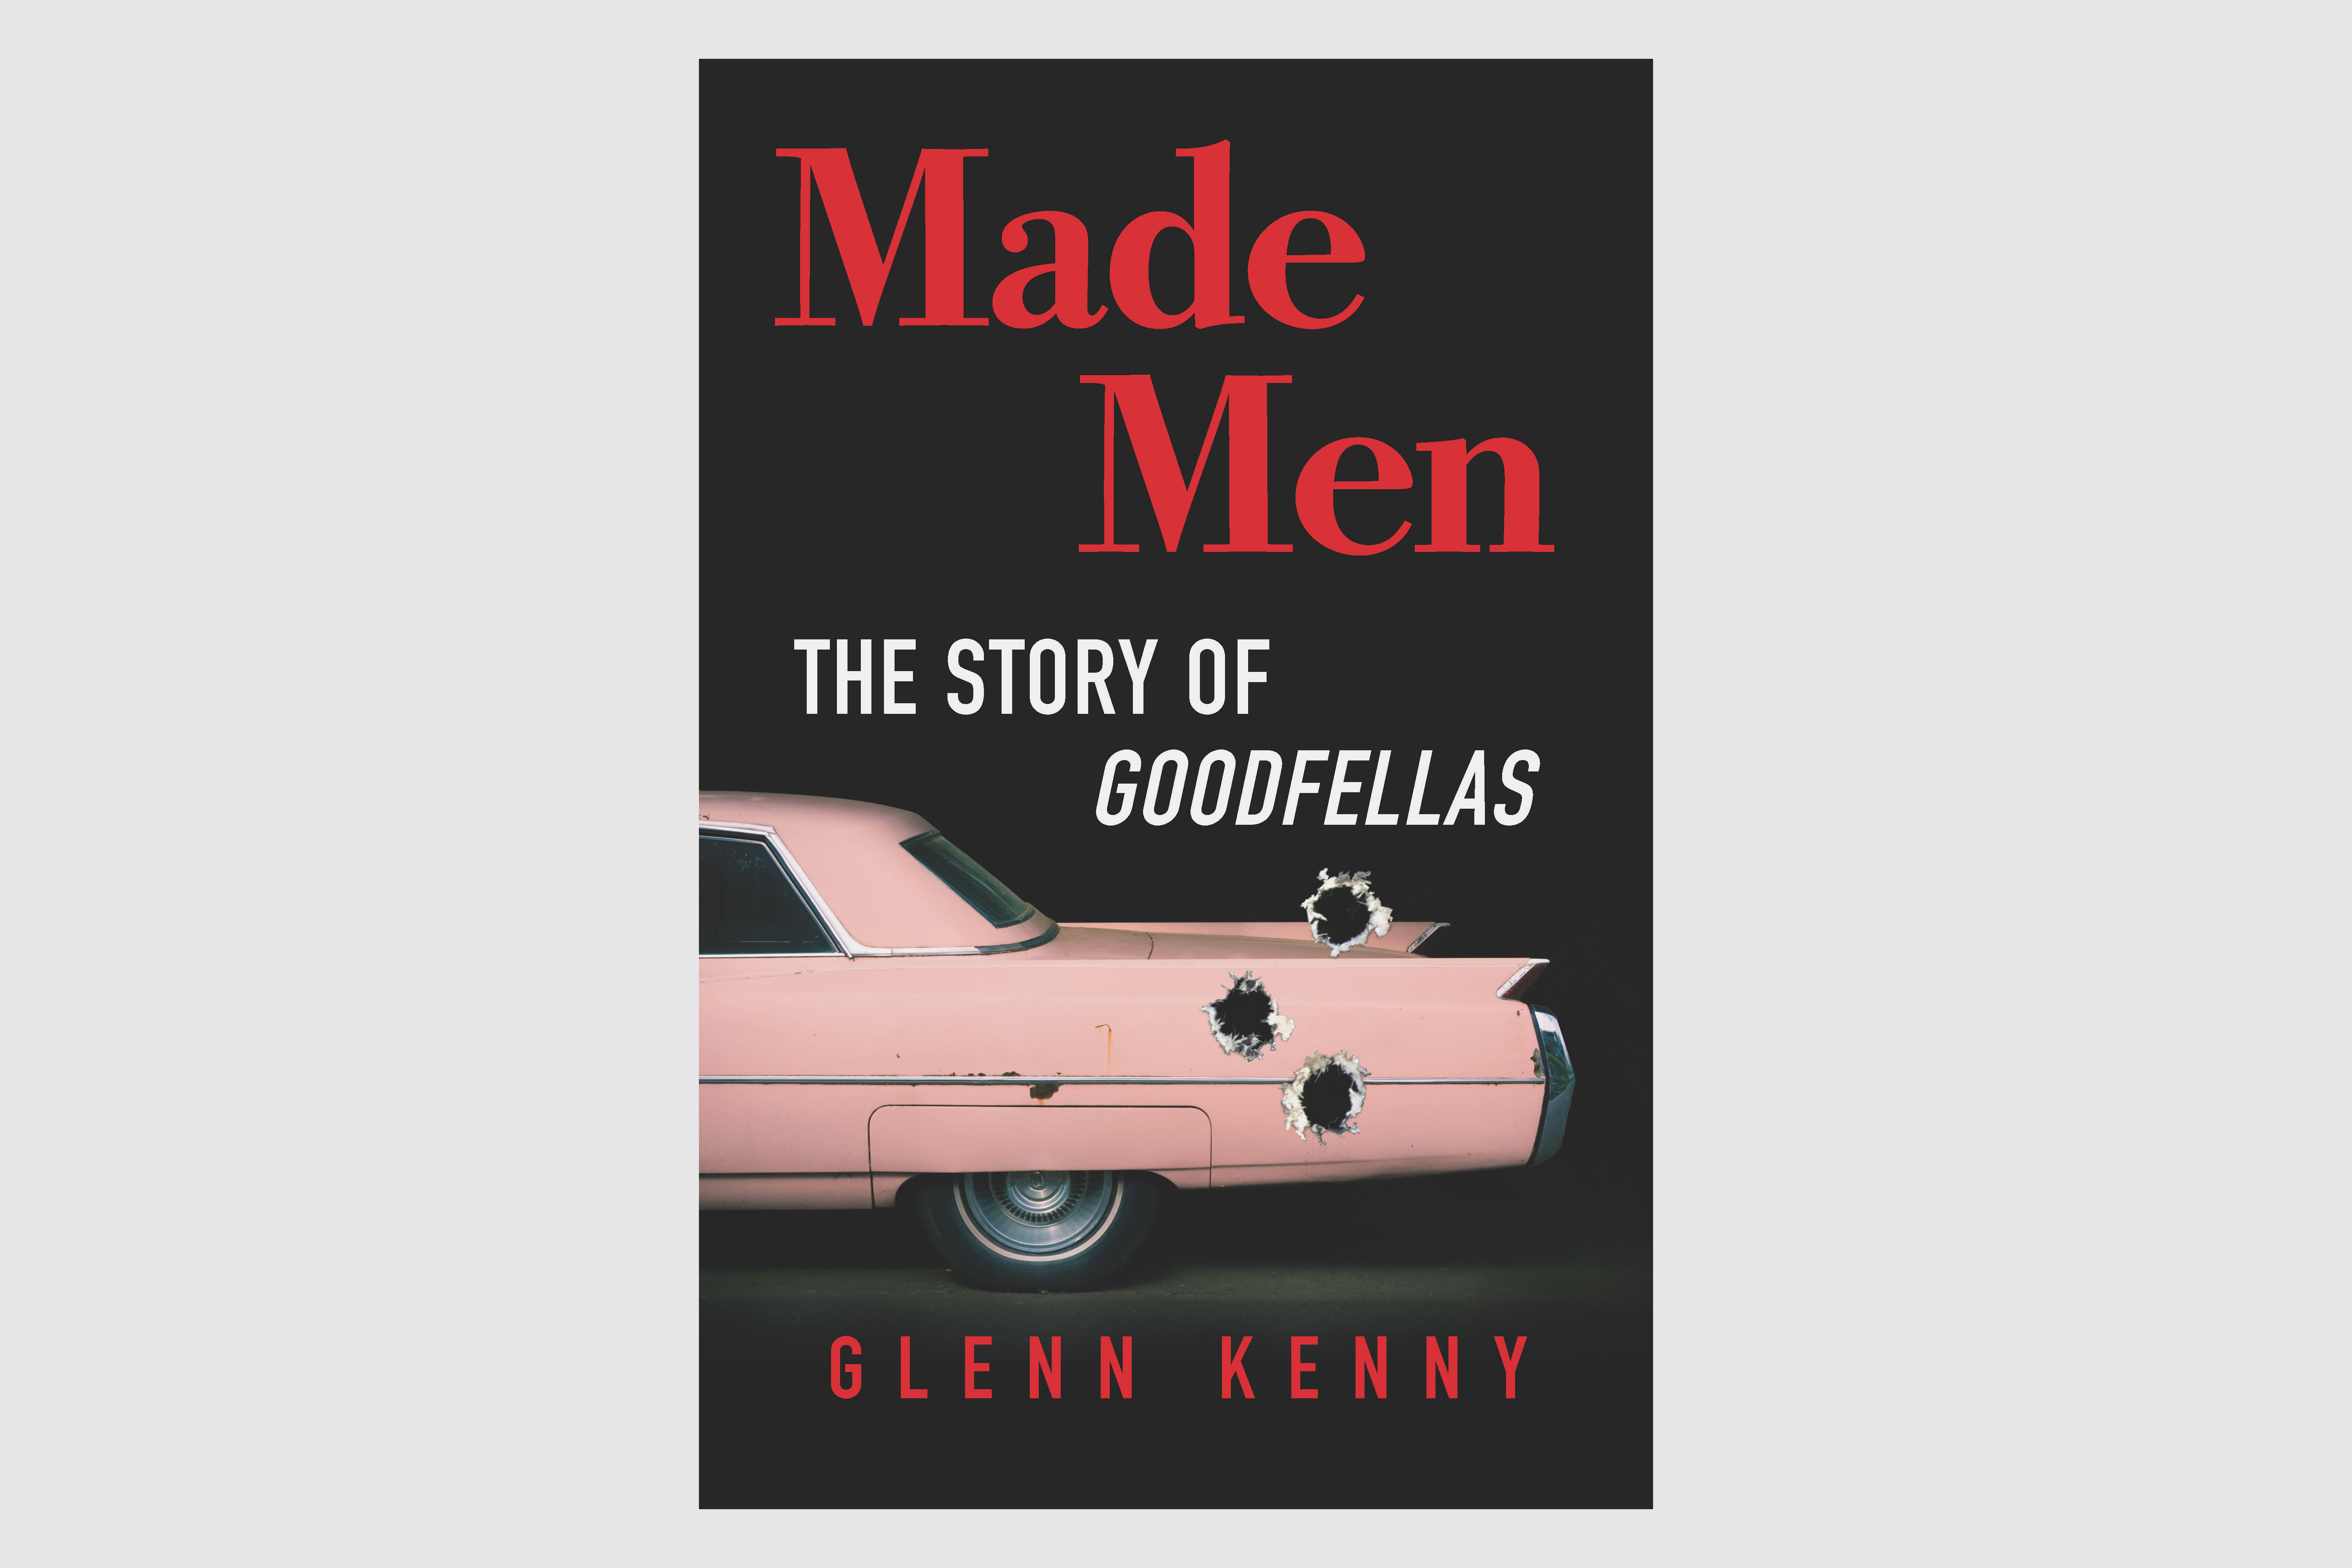 made men goodfellas book